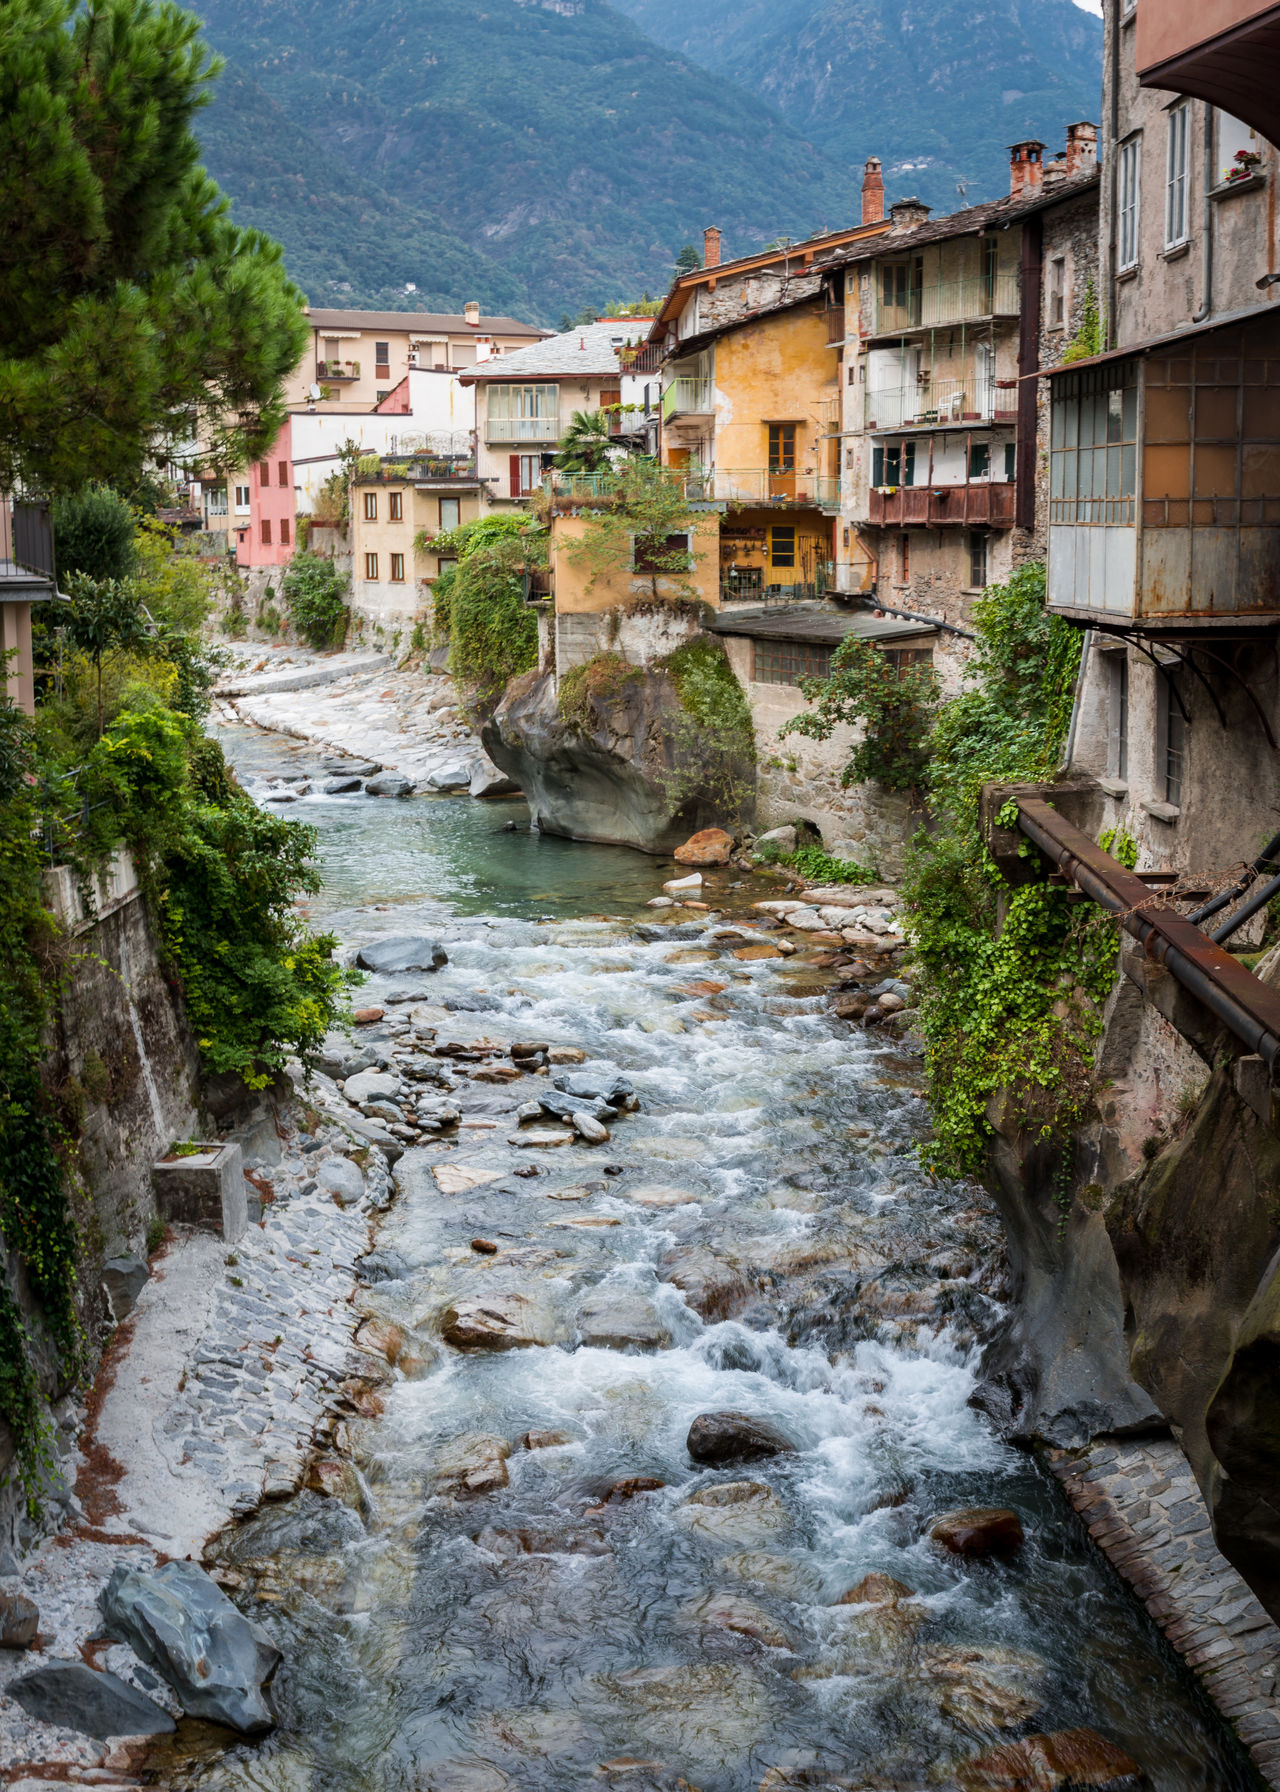 Building Exterior Built Structure Chiavenna Flow  Getty Images Italy My Year My View Nature Old Buildings Old Town Old Village River Rock - Object Rock Formation Rocks Rocks And Water Village Miles Away